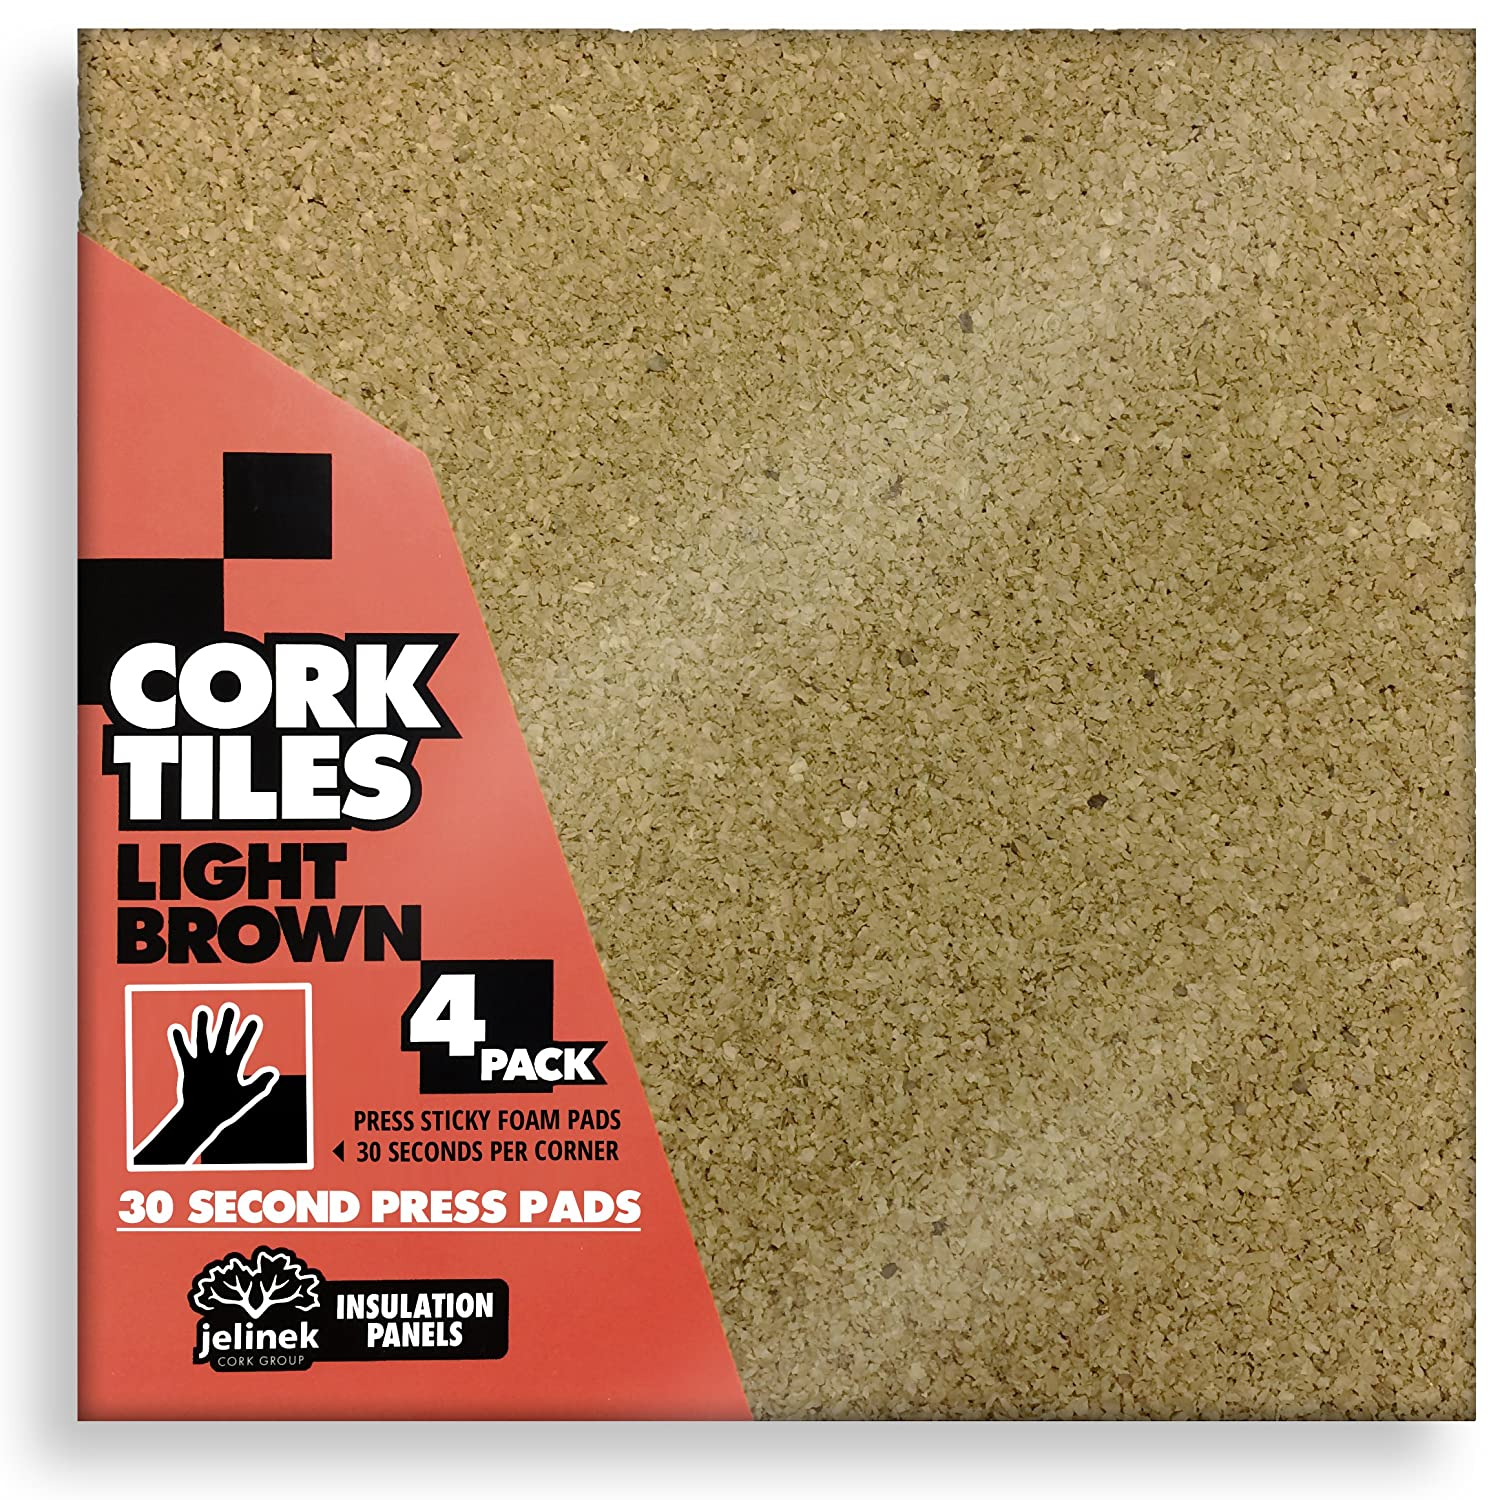 12 x 12 Light Brown Cork Tiles - Pack of 4 Jelinek Cork Group wlins-lig30530550n-p4